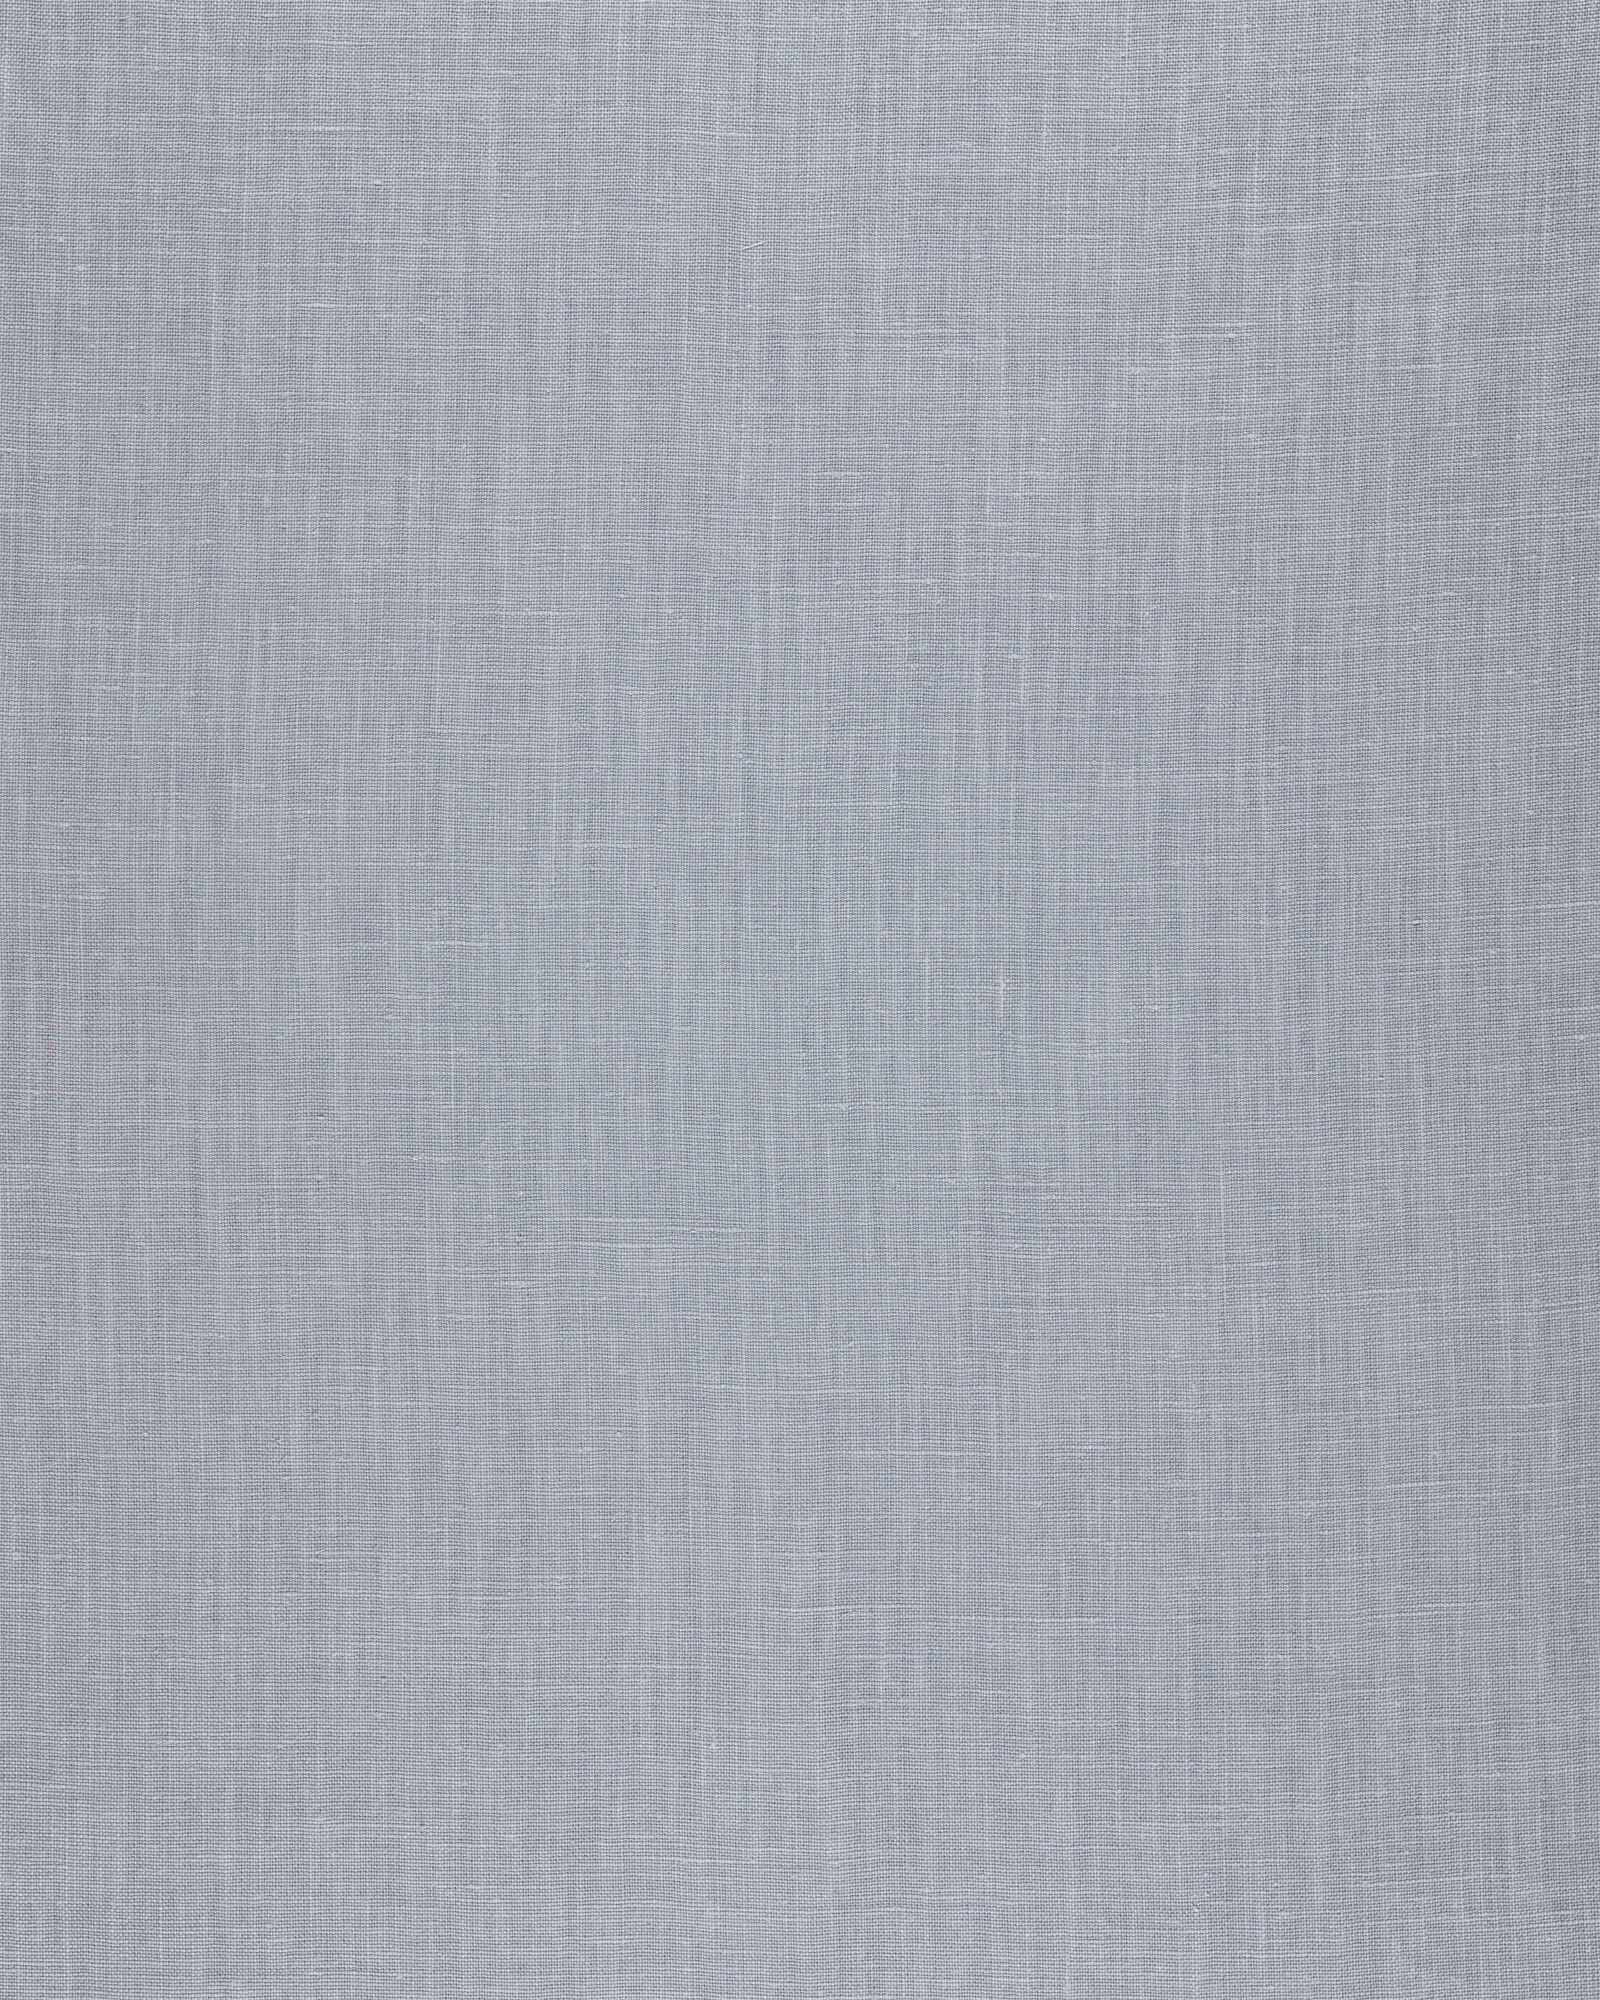 Fabric by the Yard – Washed Linen, Coastal Blue